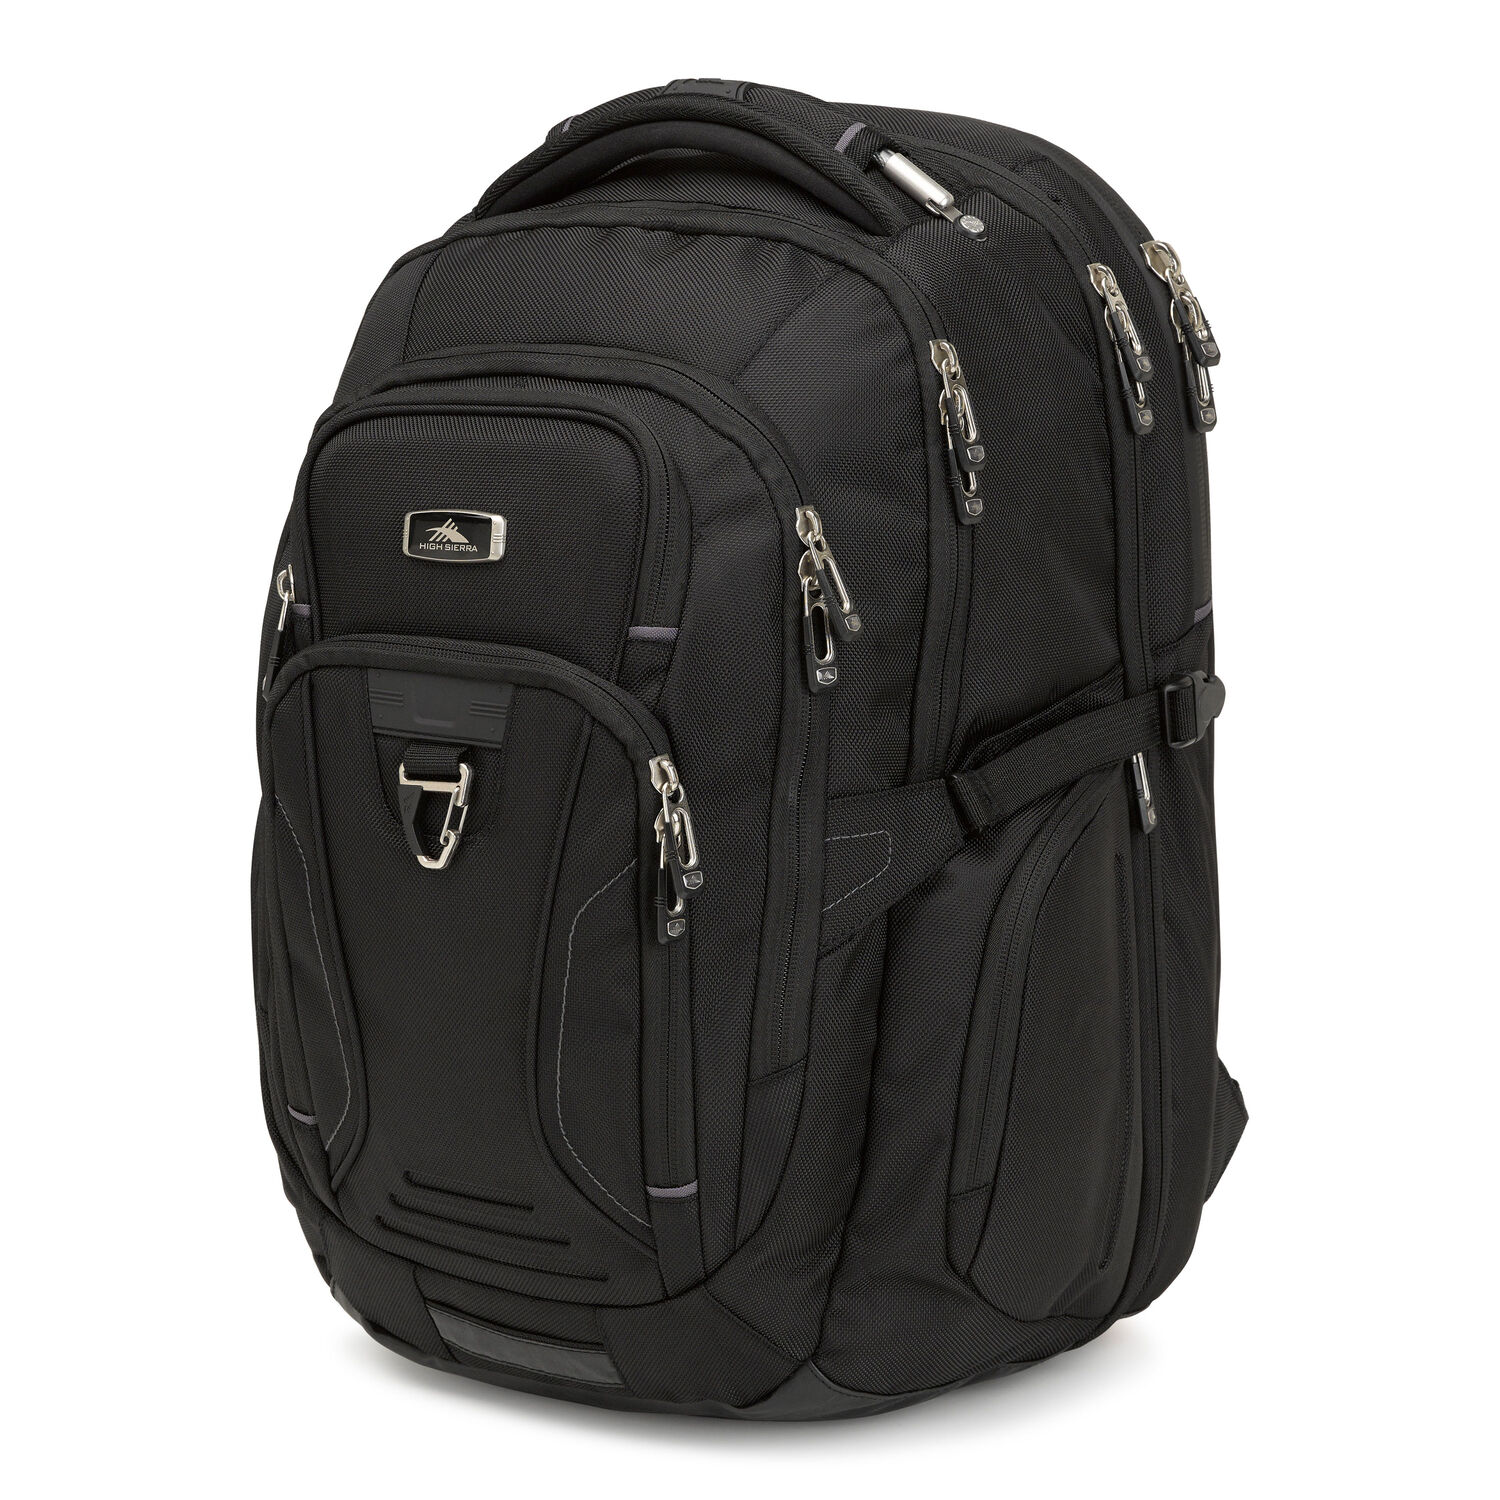 It is a large capacity bag at cubic inches and weighs in at only pounds. Price Range: Medium All the backpacks listed in the top 10 are great choices for college and high school students.